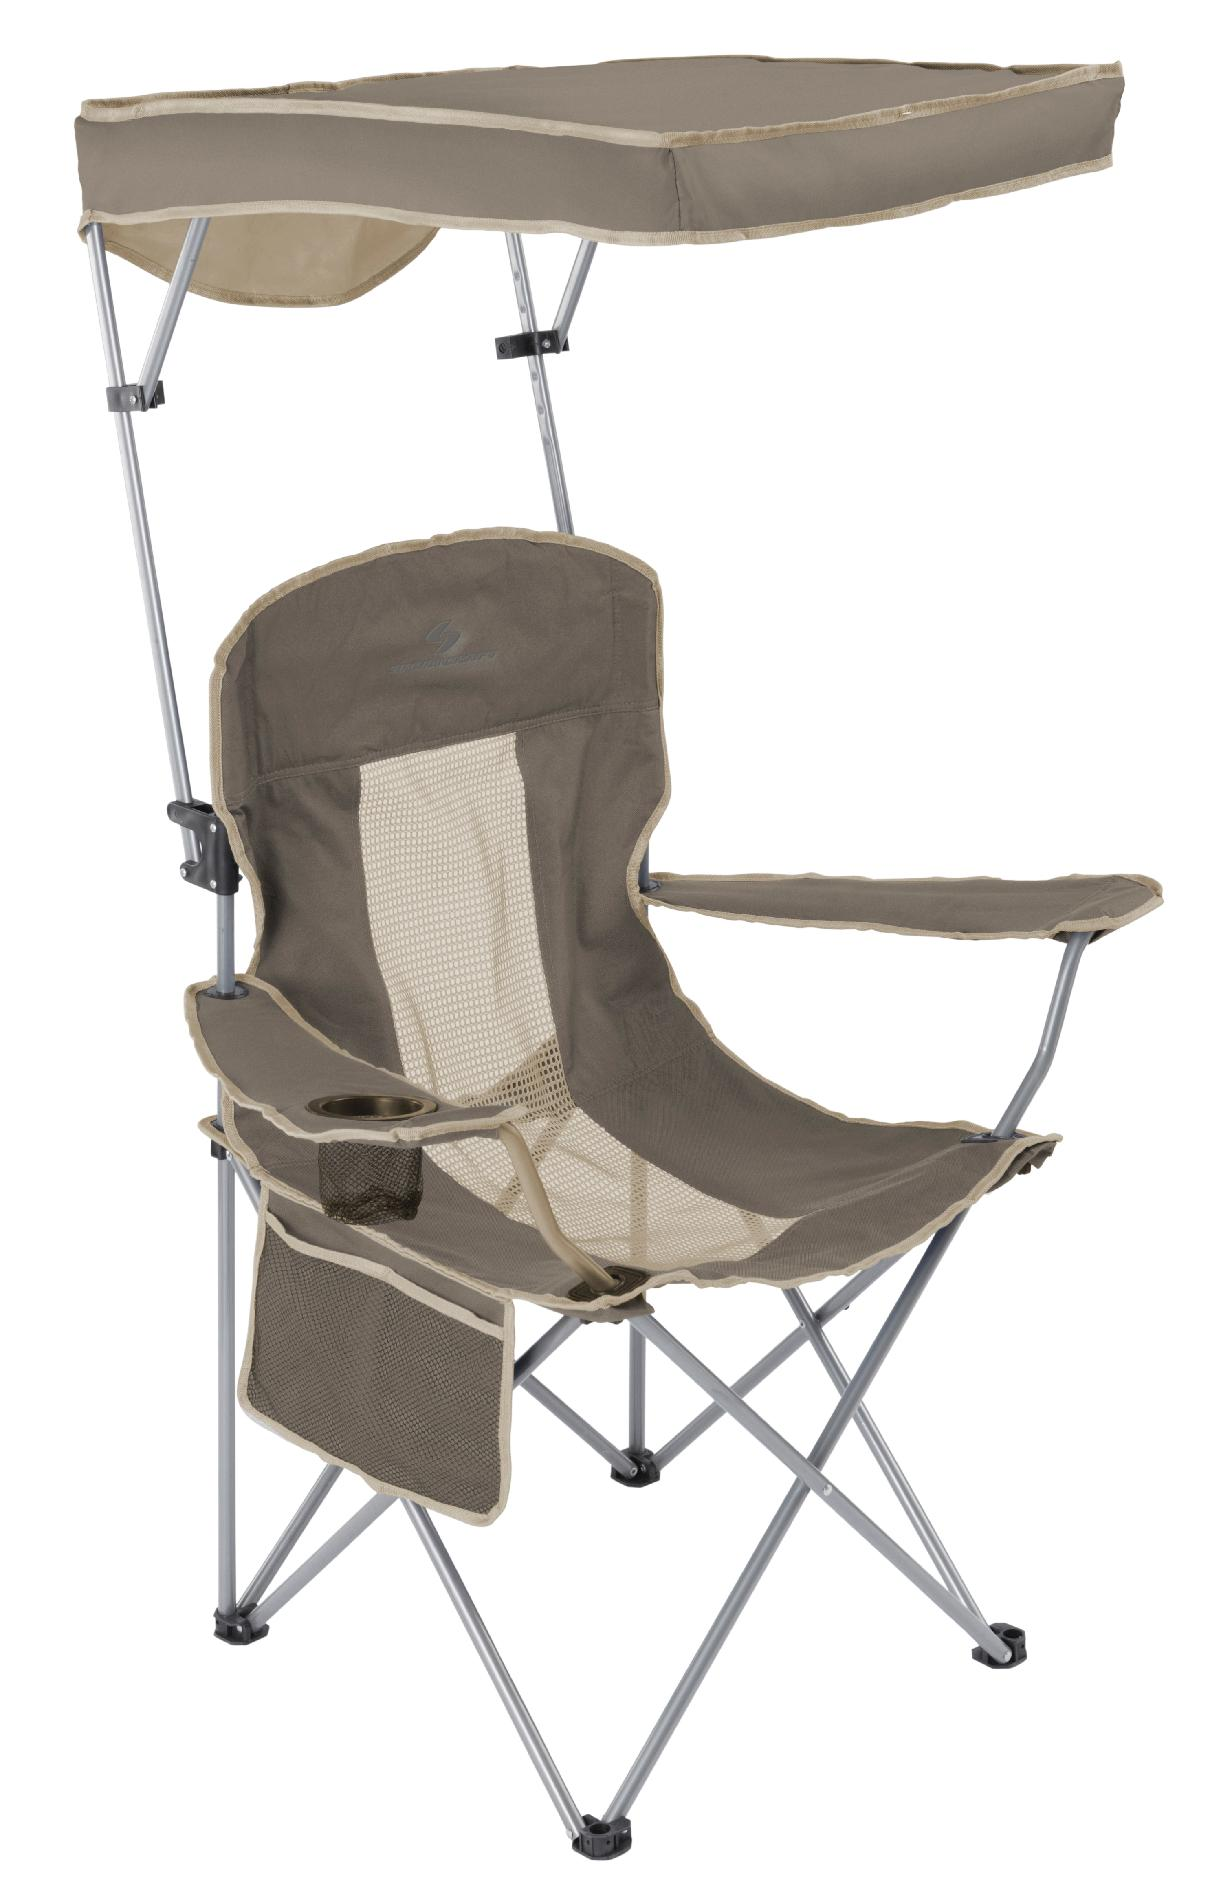 Outdoor Chair With Canopy Sportcraft Canopy Chair